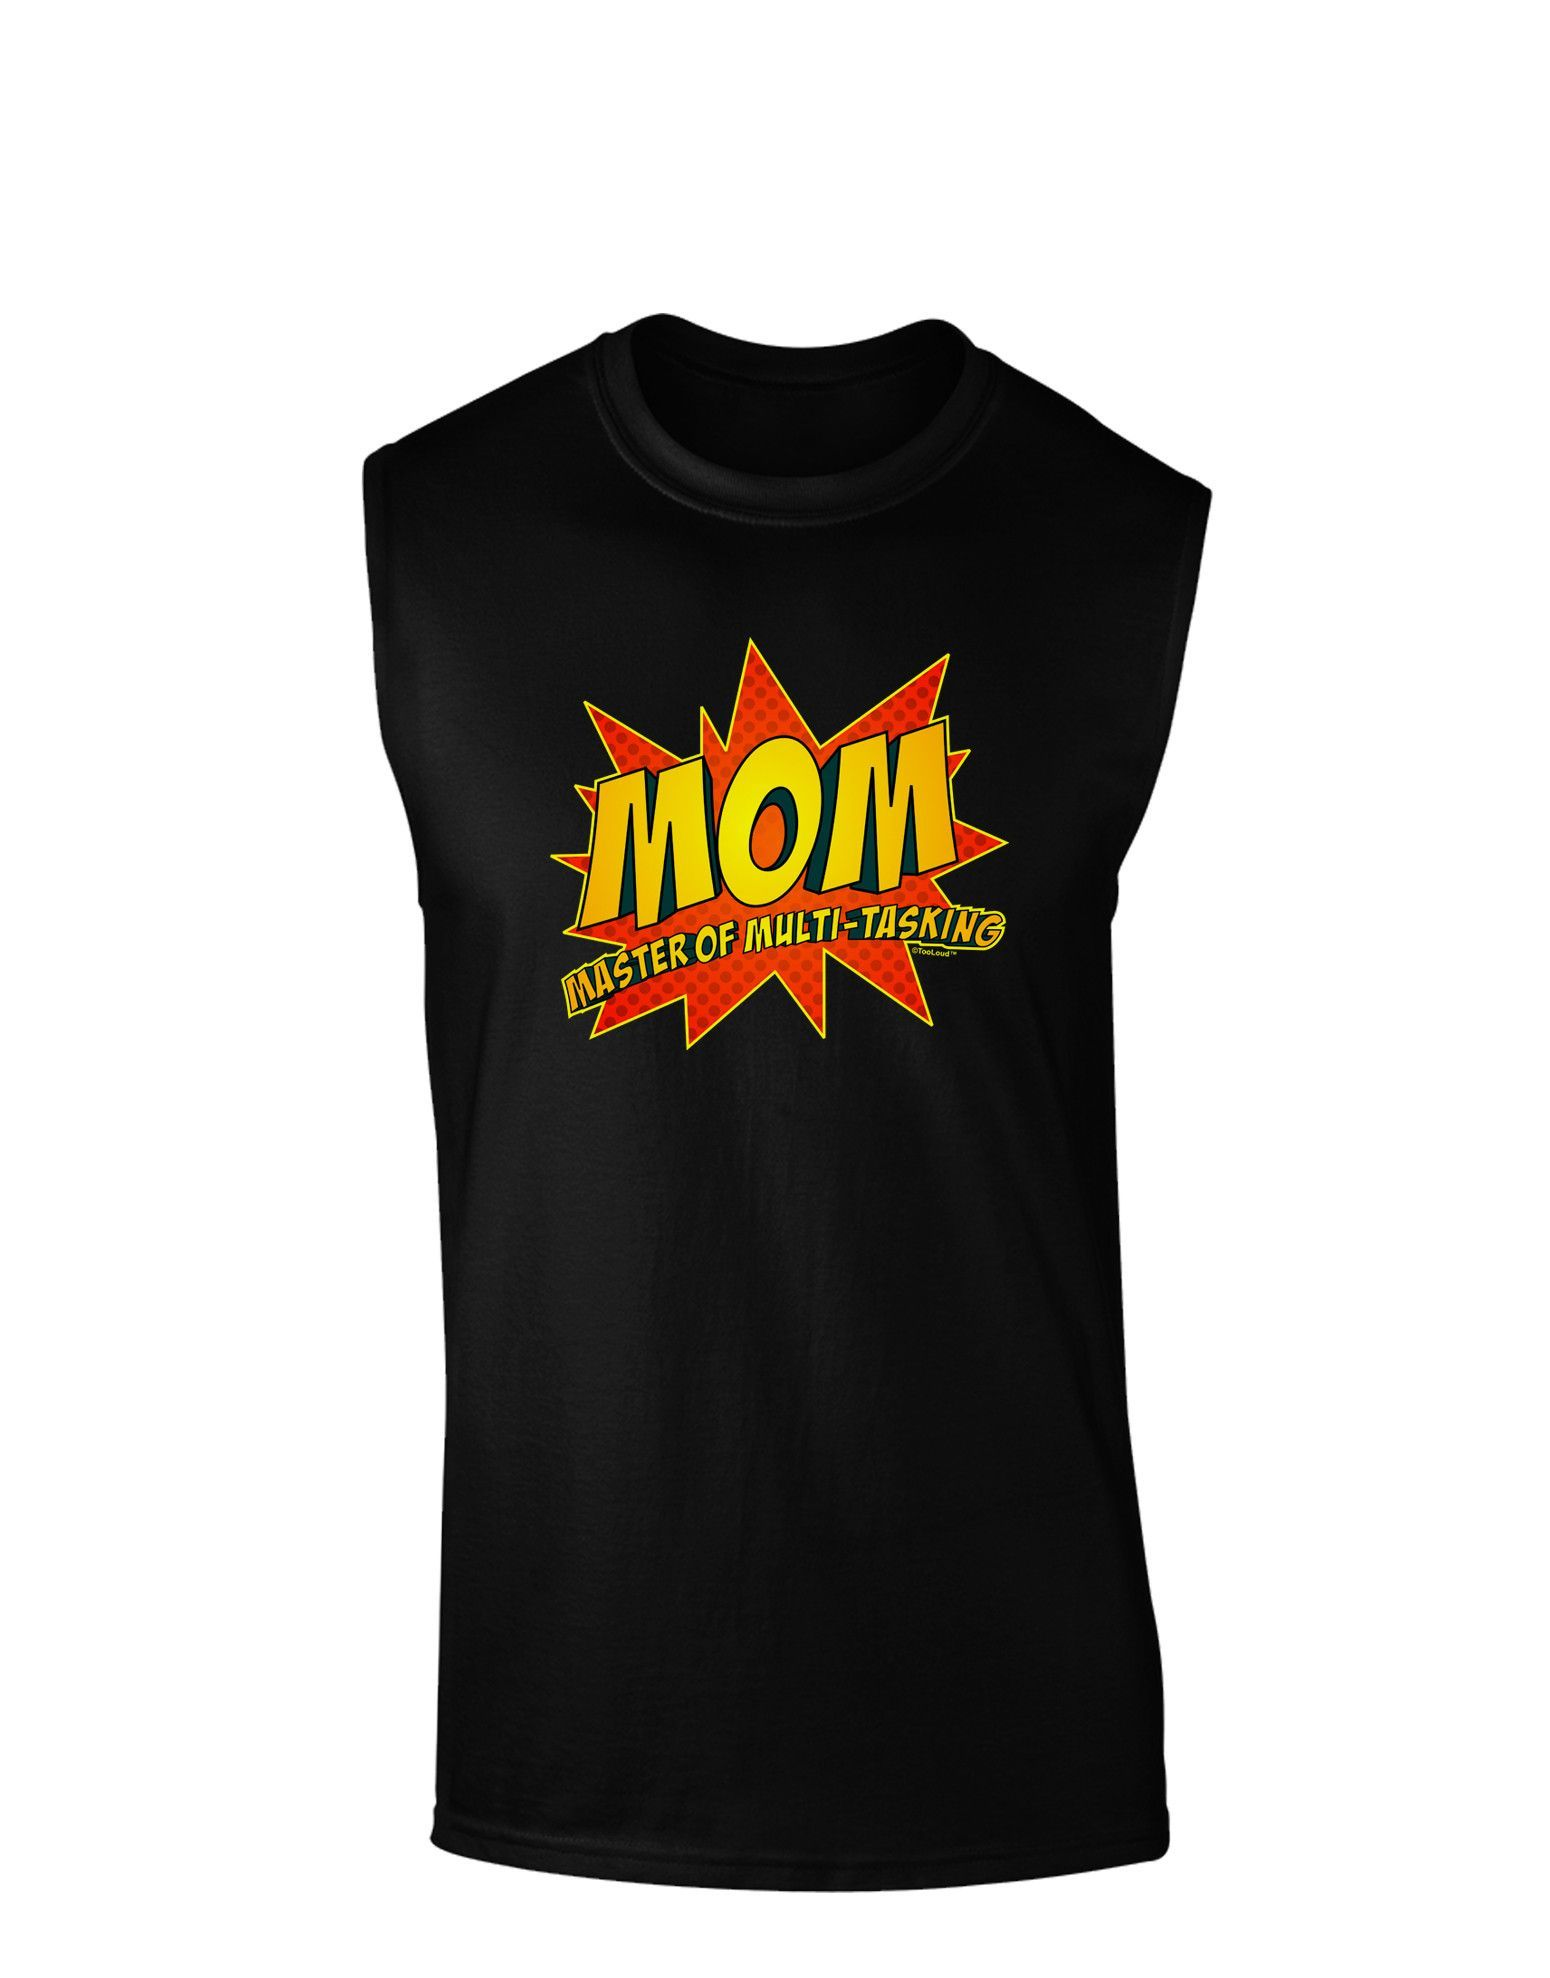 TooLoud Mom Master Of Multi-tasking Dark Muscle Shirt